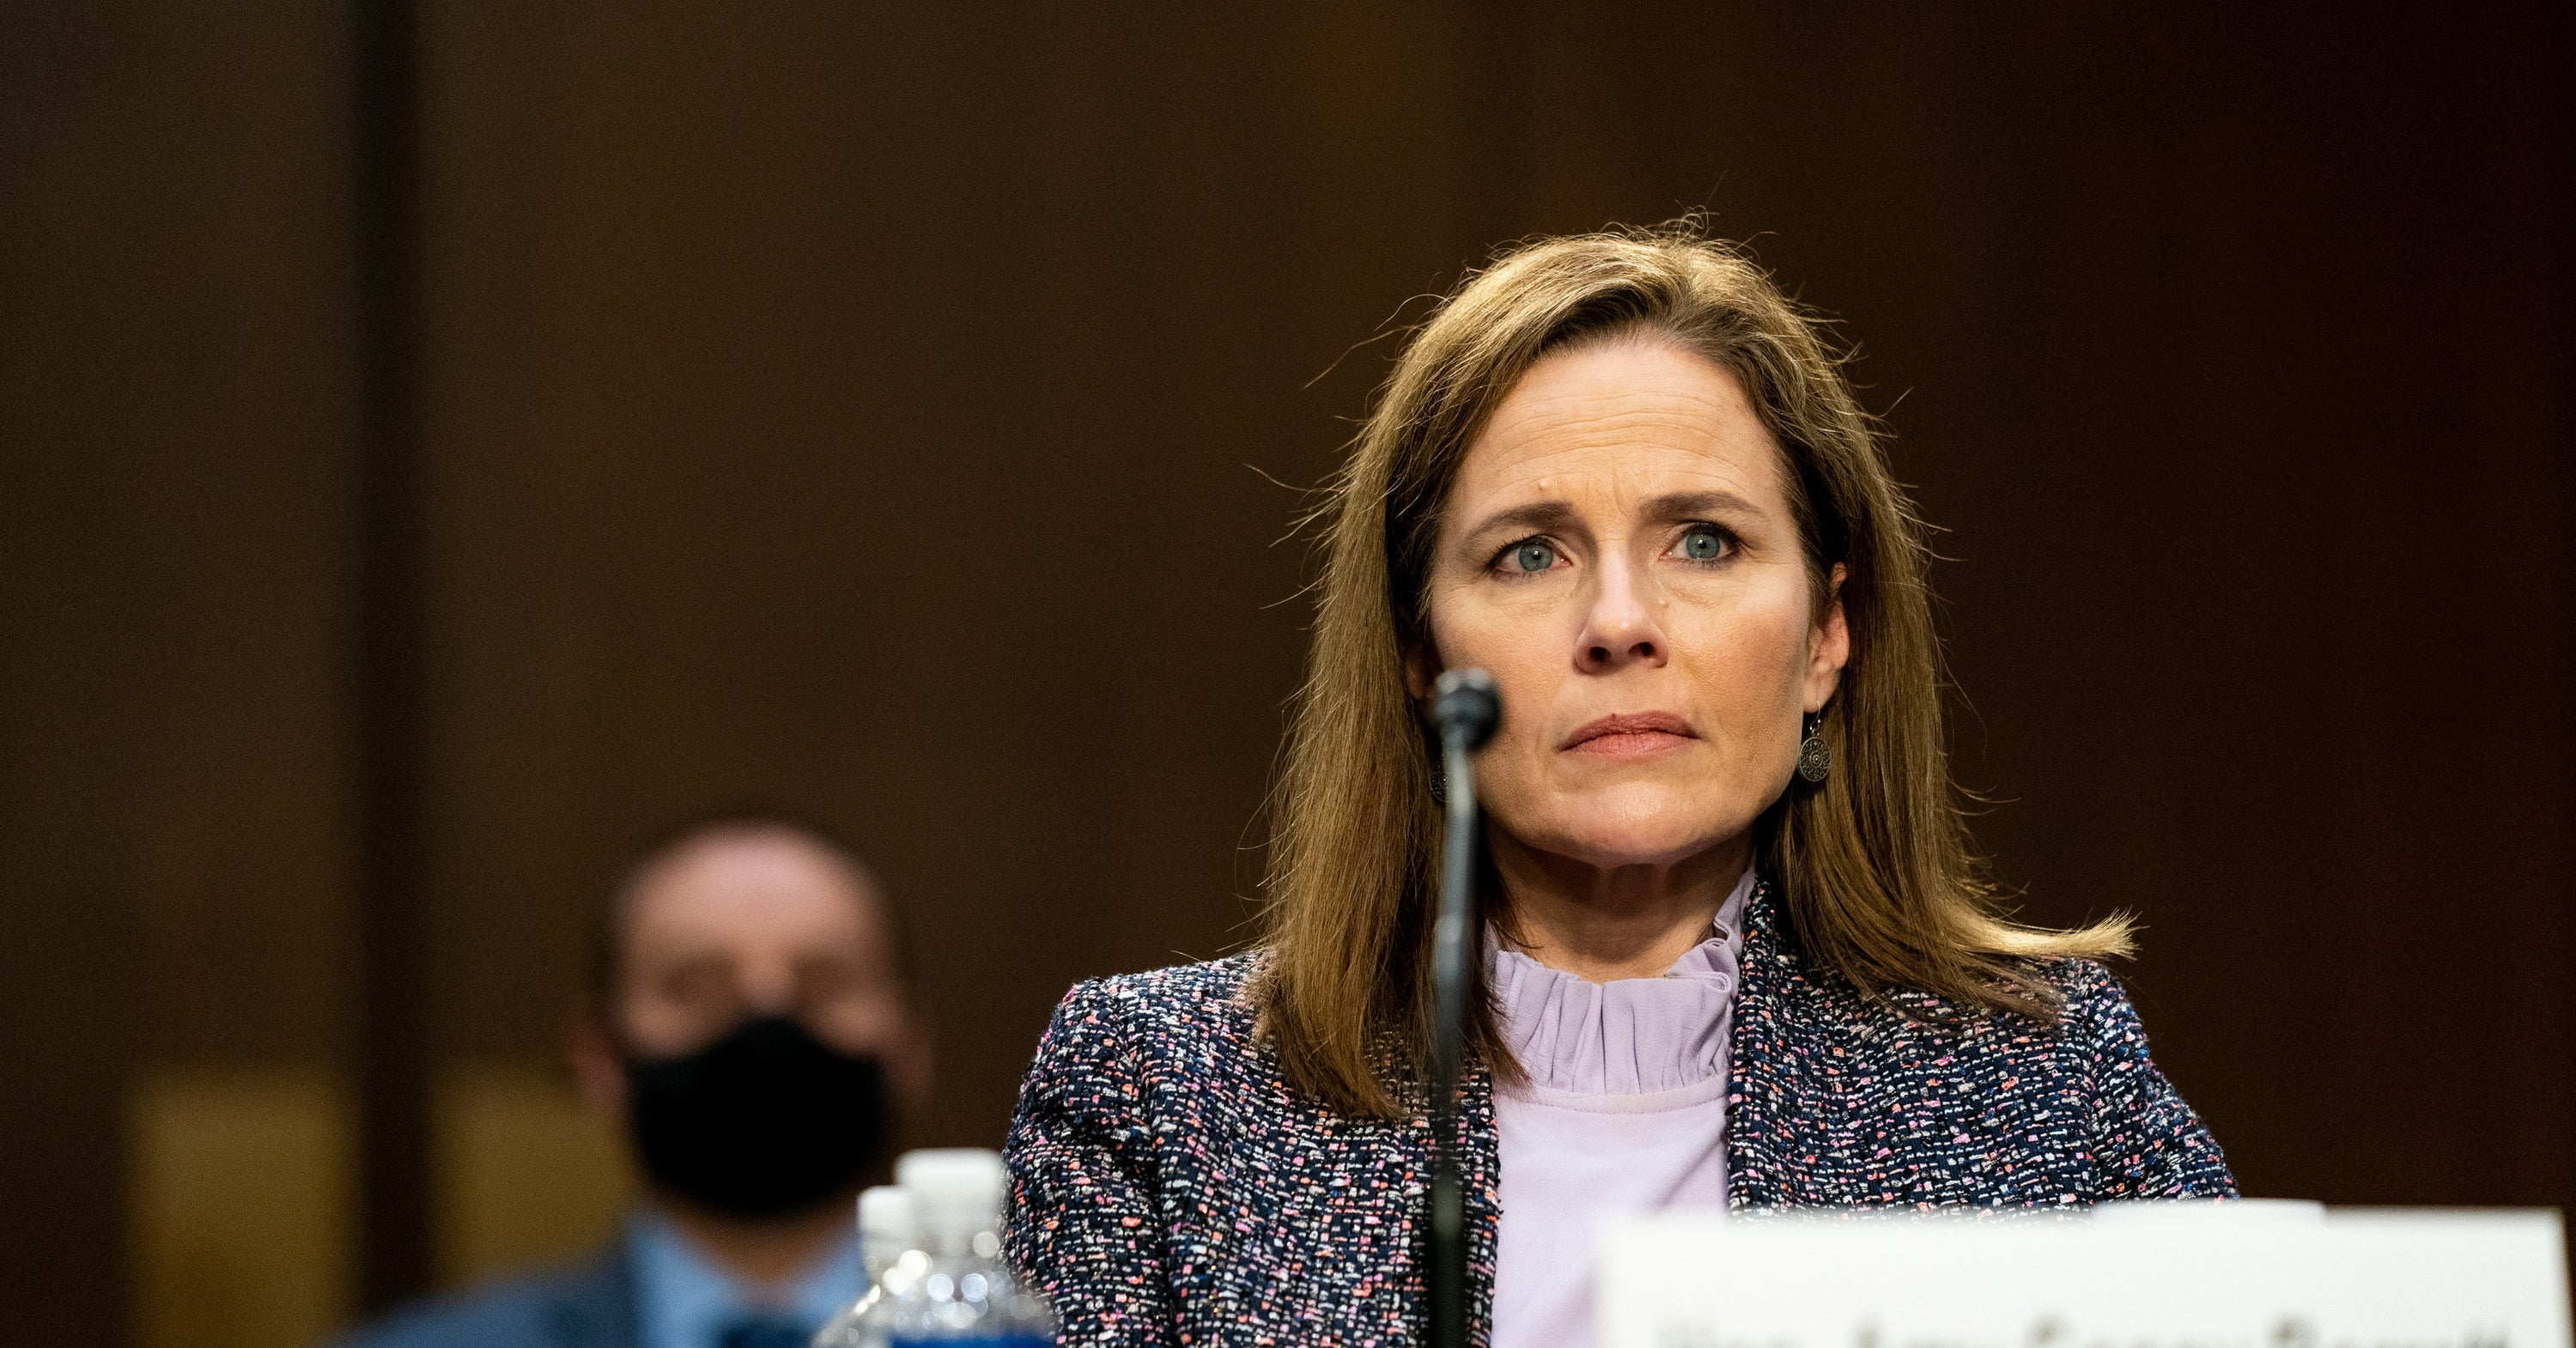 Image Opinion: How Claims Of Sexism And Anti-Catholic Bias Helped Amy Coney Barrett